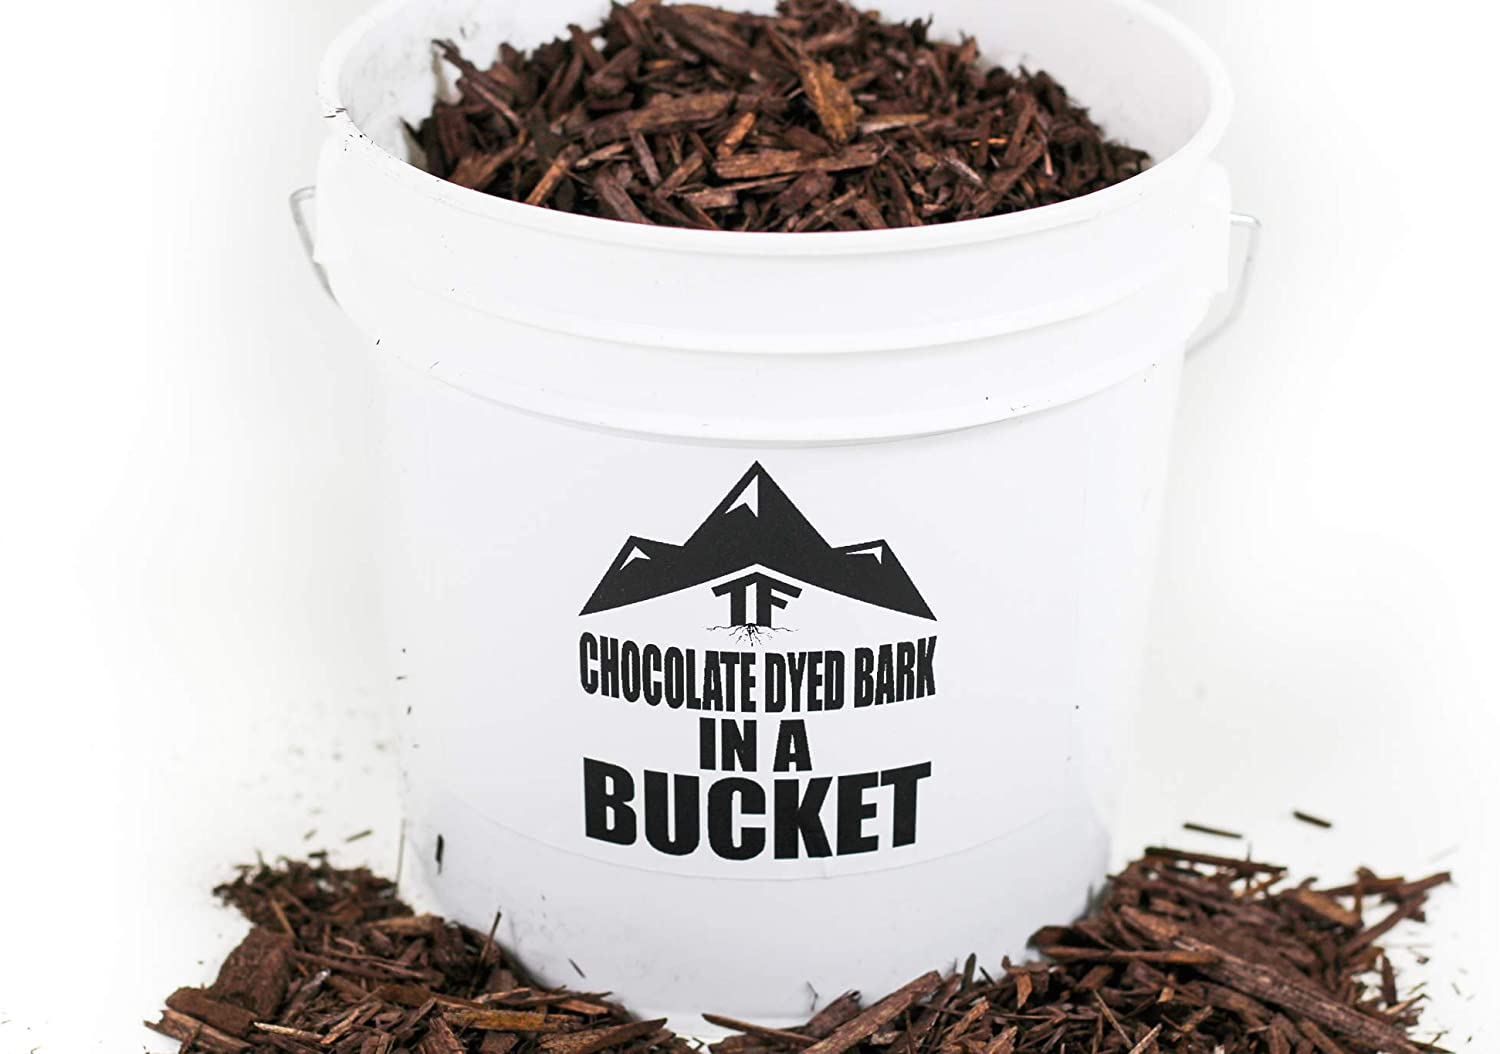 Chocolate Dyed Bark Mulch in Bucket - by TERRAFIRMA - 1 Gallon - Shredded bark Mulch Wood Chips, Dyed with a Rich, Non-Toxic Chocolate Colored Wood dye